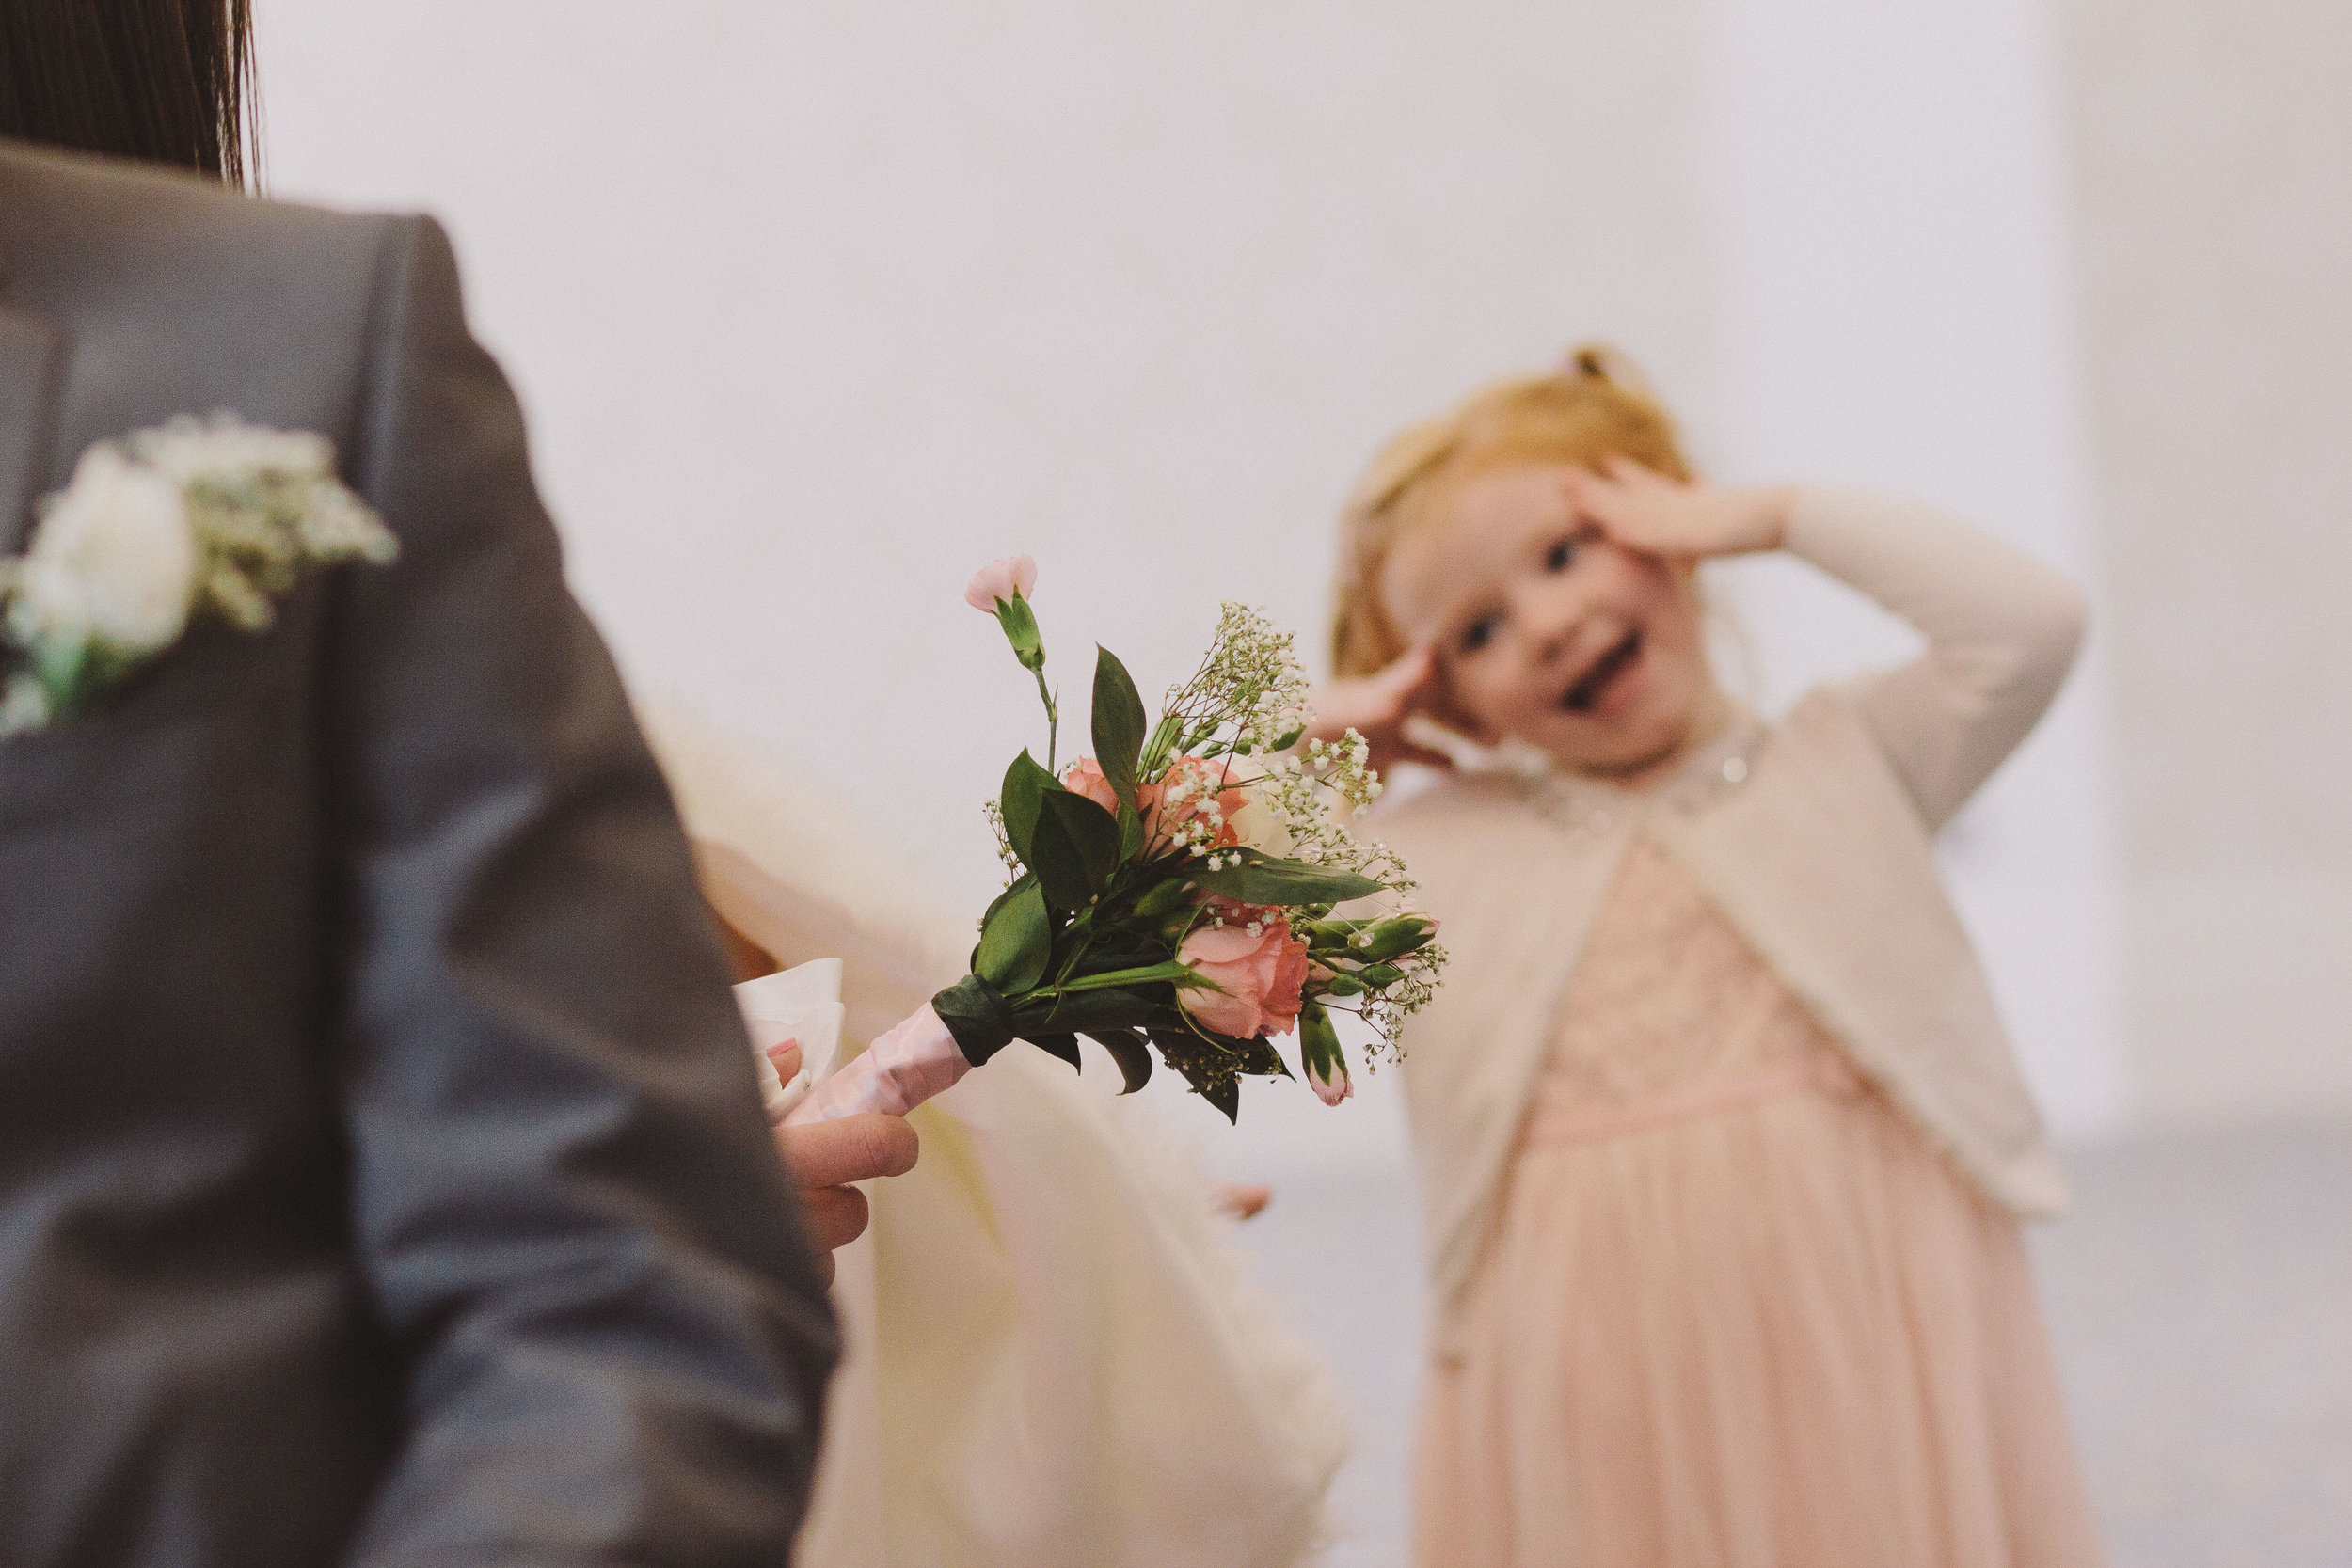 Alternative compositions and subject matter make for fun and spontaneous photographs that are unique to your wedding